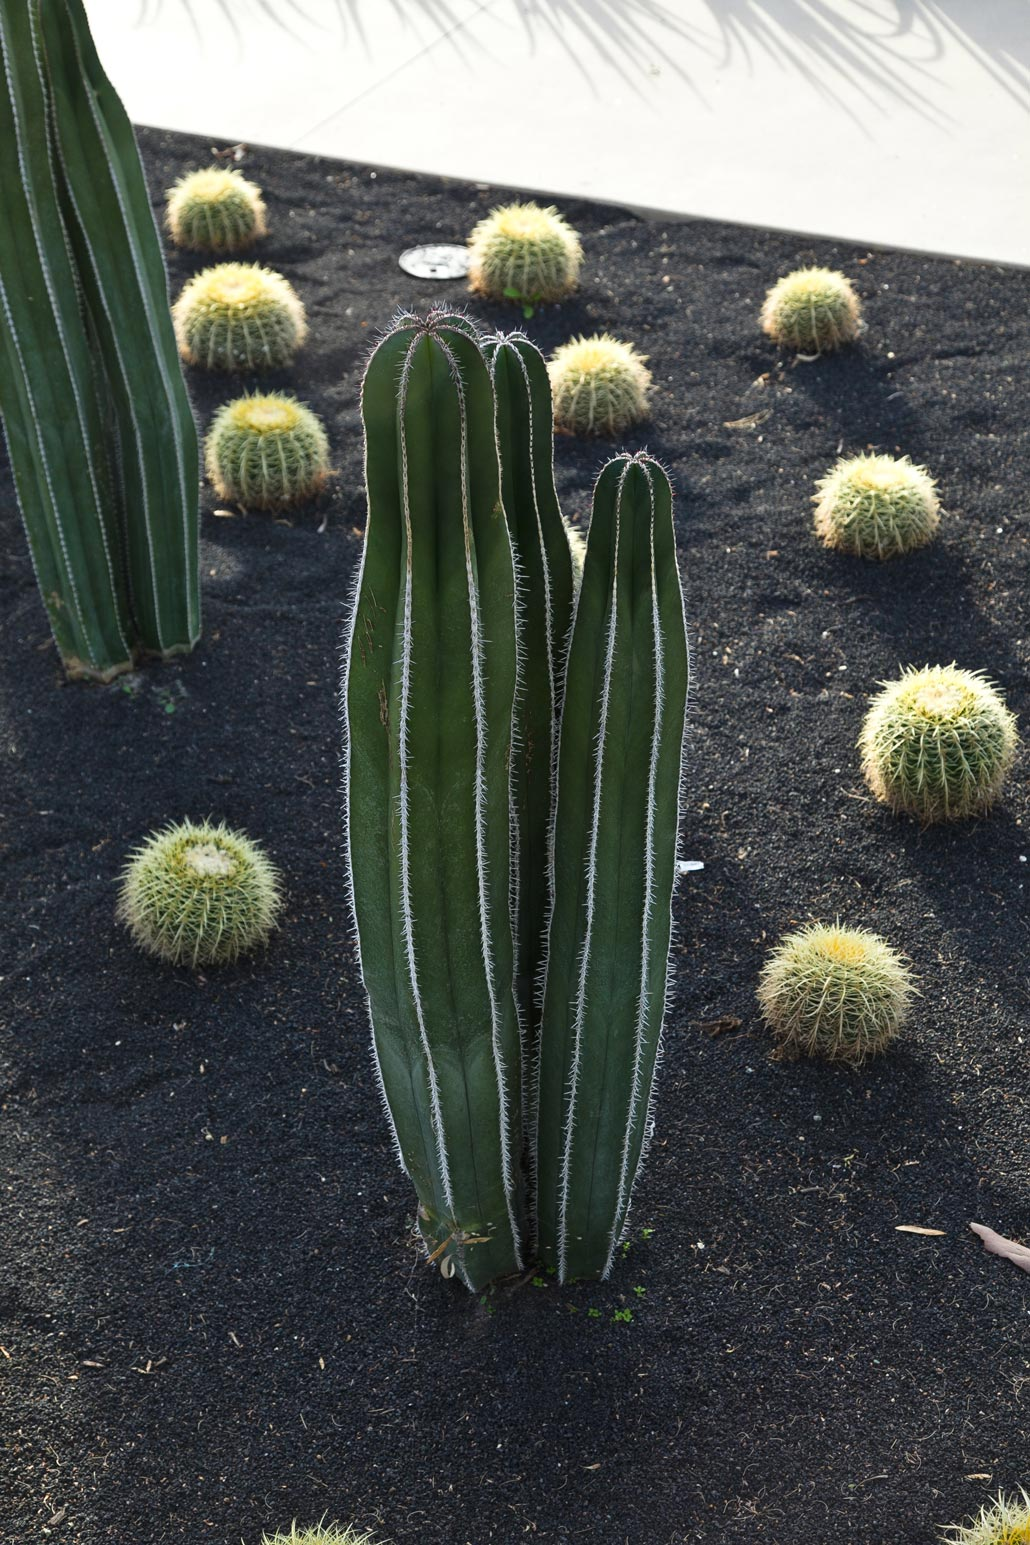 A short Fencepost cactus surrounded by Golden Barrel cactus and black scoria.